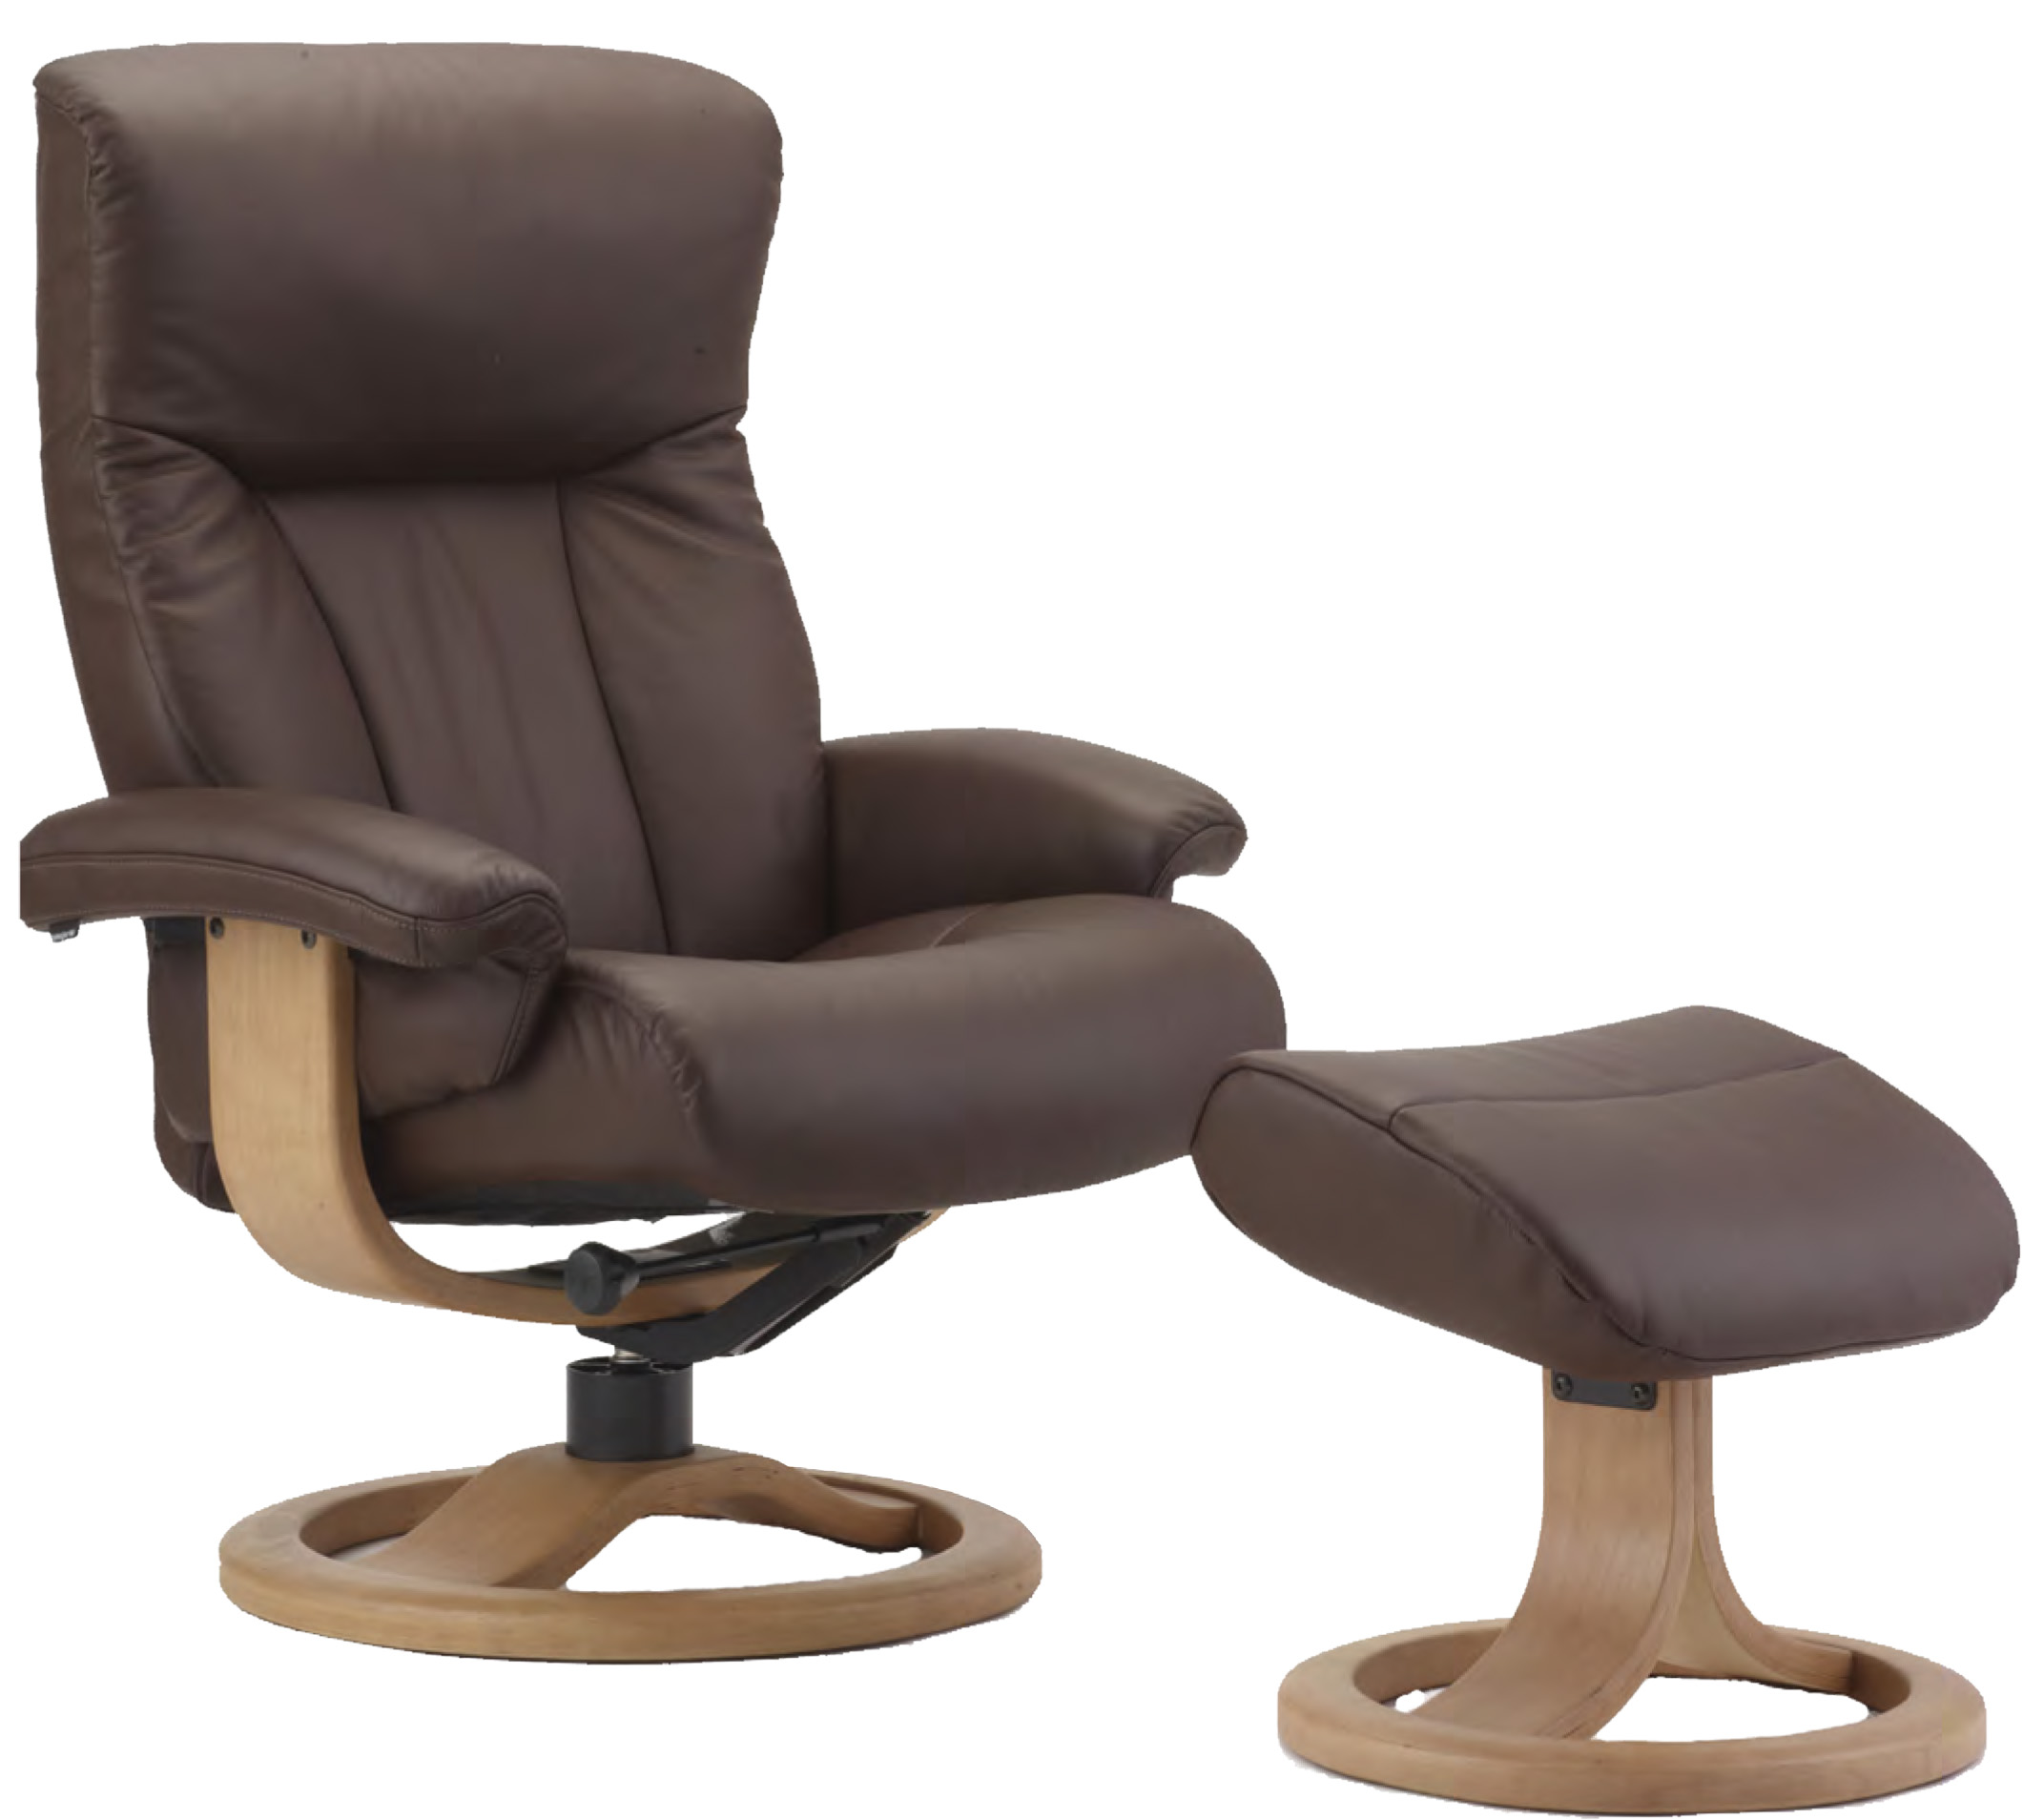 Fjords Scandic Ergonomic Leather Recliner Chair Ottoman Scandinavian Norweg